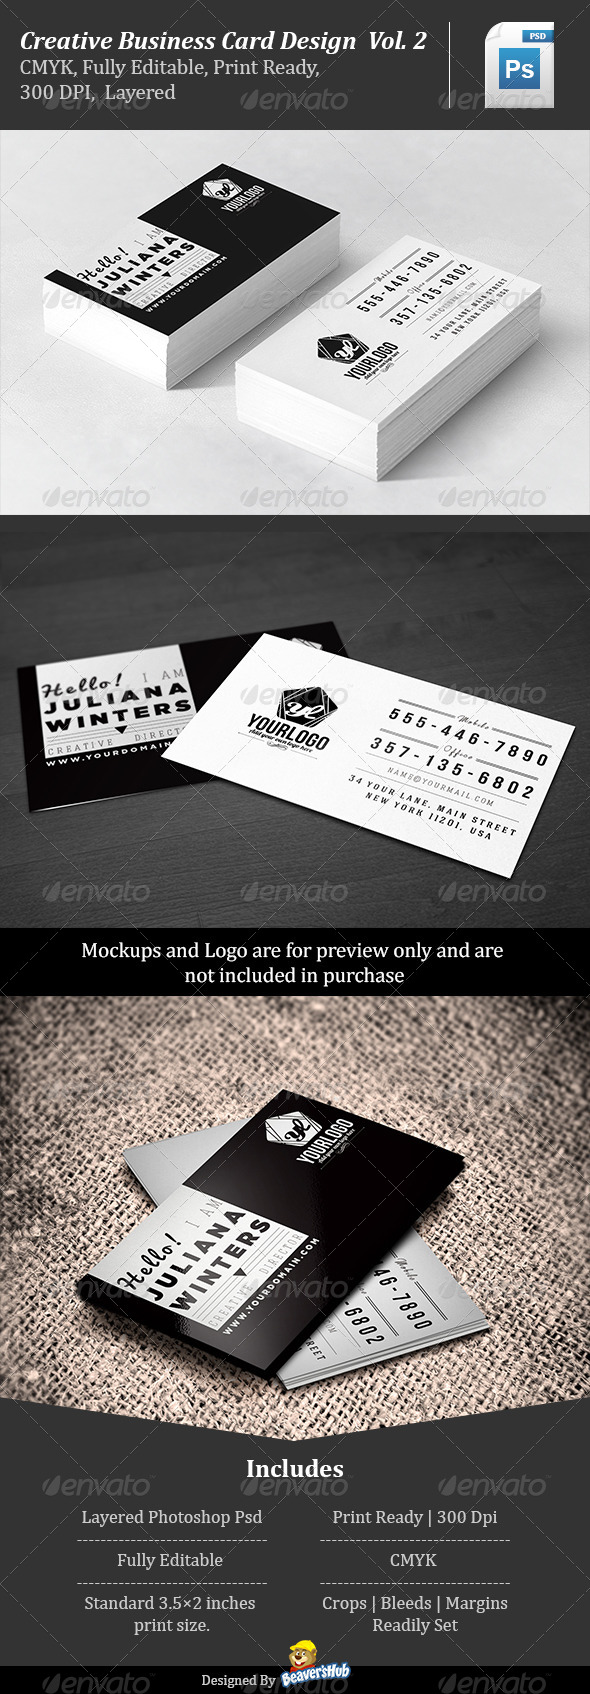 GraphicRiver Creative Business Card Design Vol.2 6976771